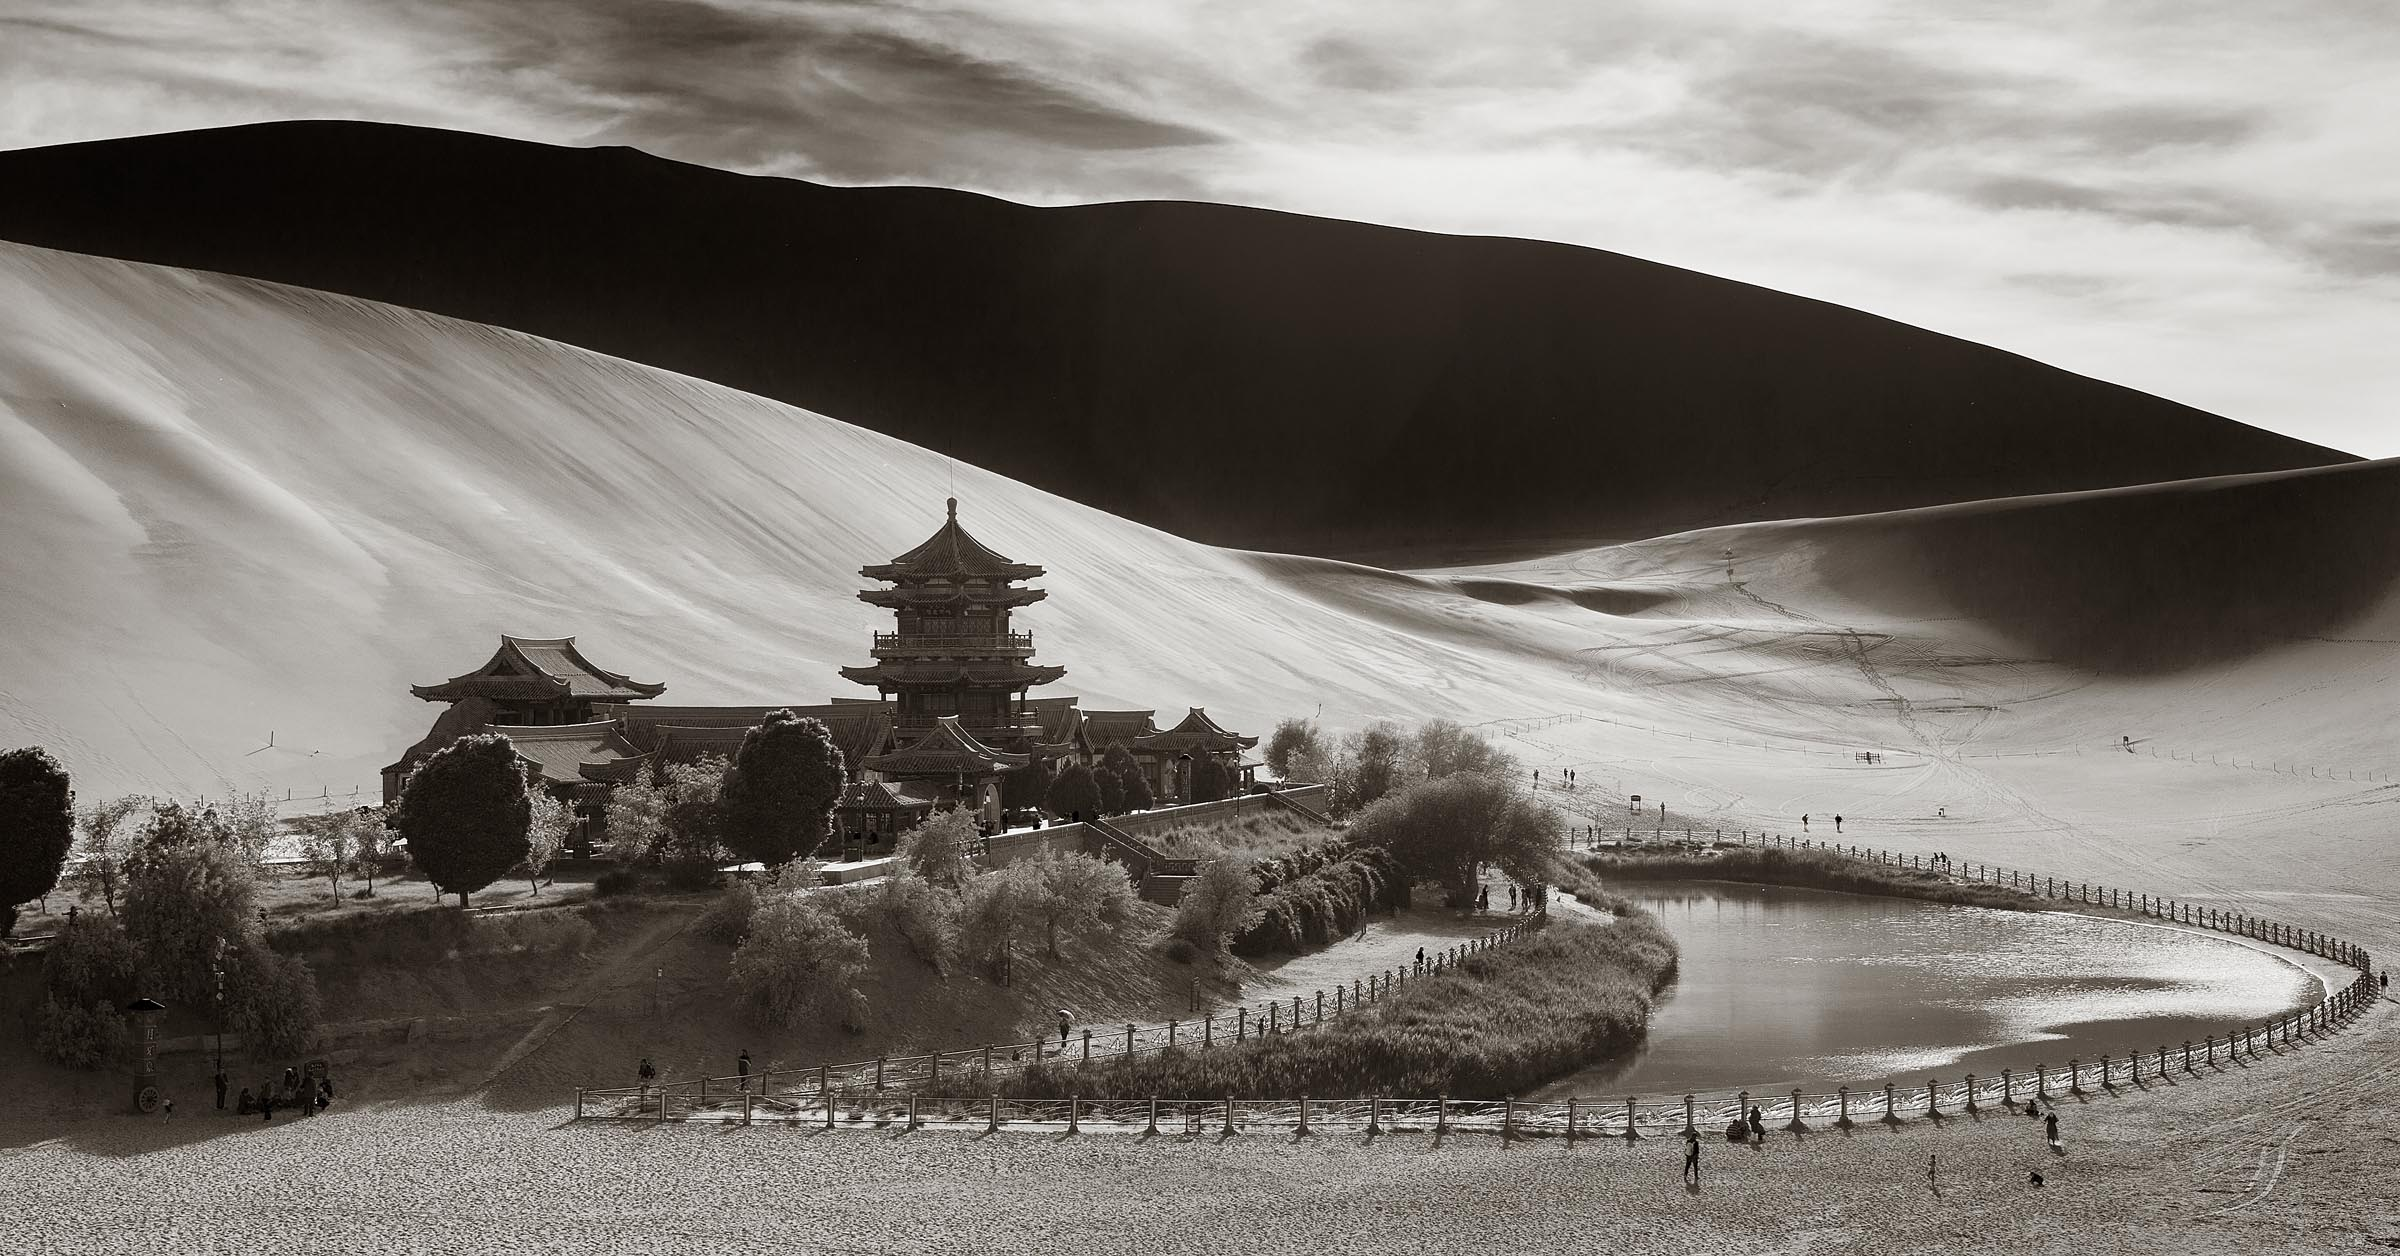 An oasis in Donhuan, China known as Crescent Lake.